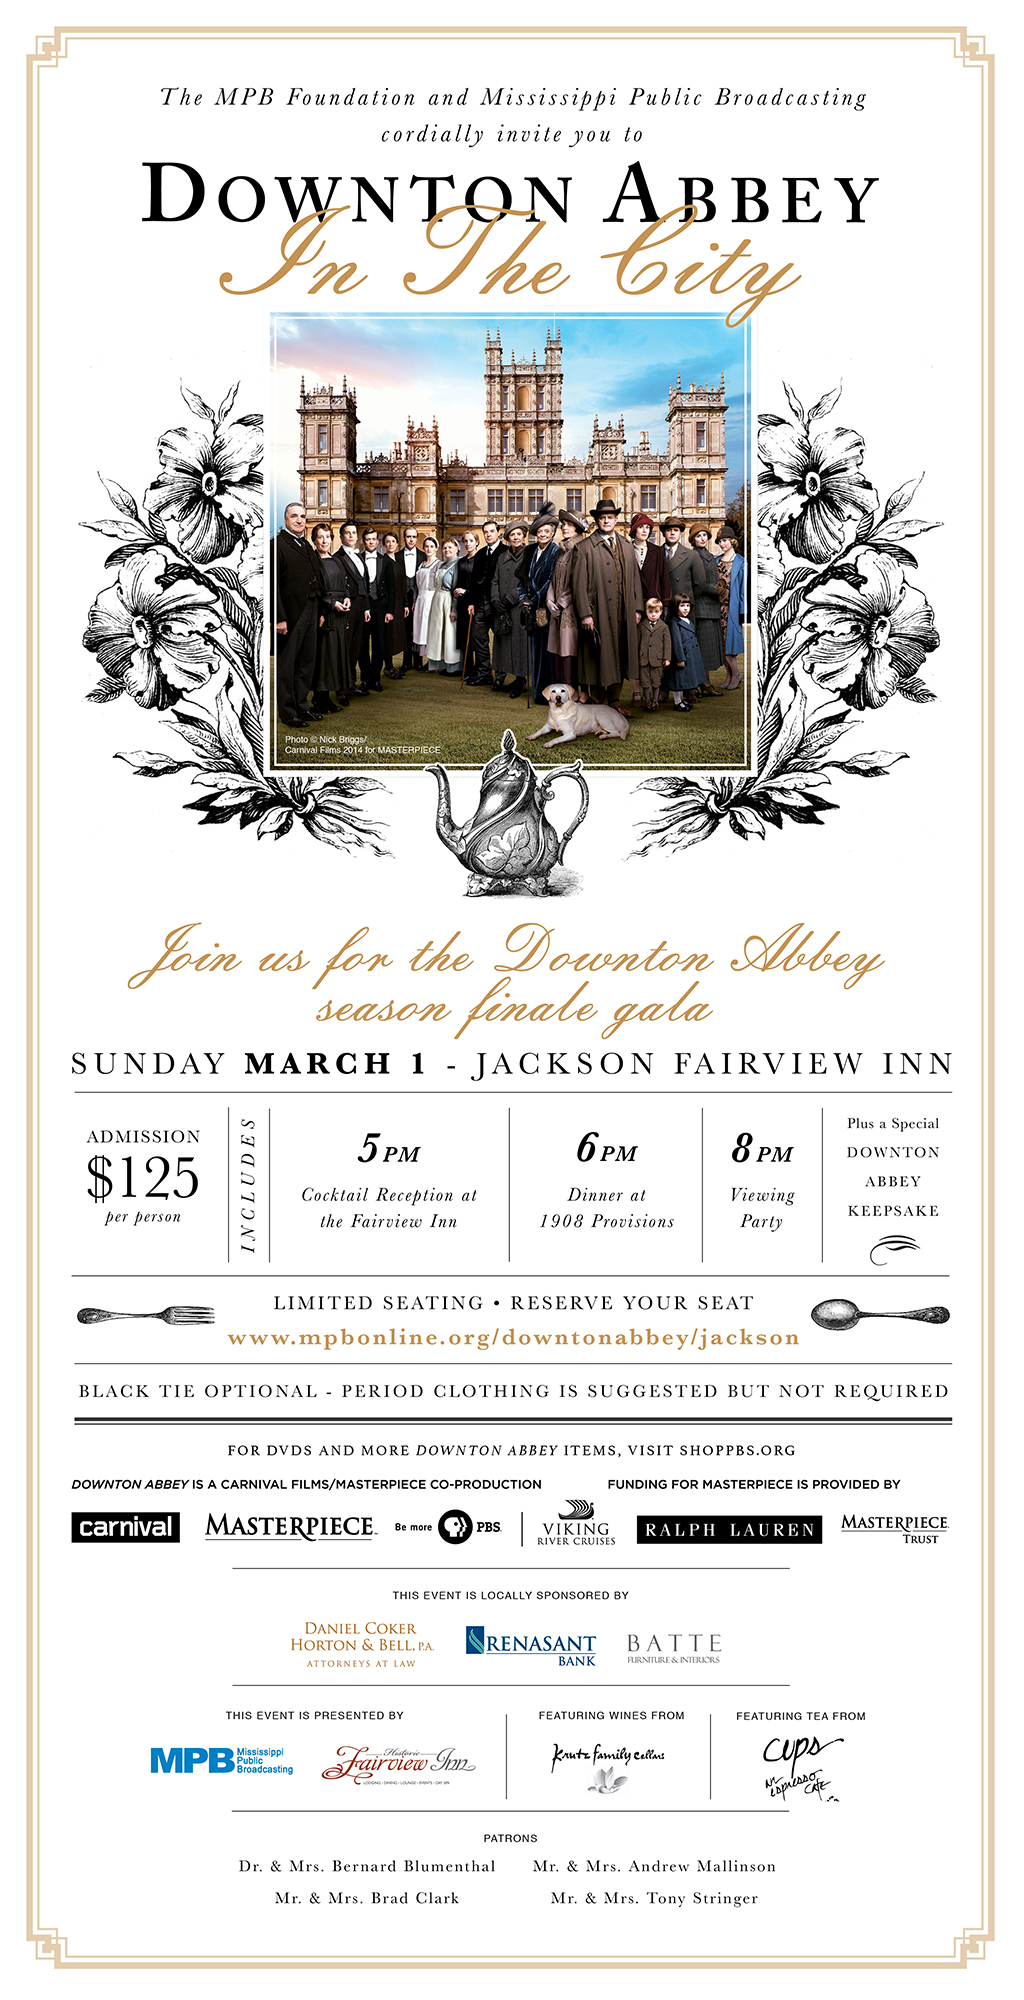 Downton abbey in the city tickets jackson eventbrite for Downton abbey tour tickets